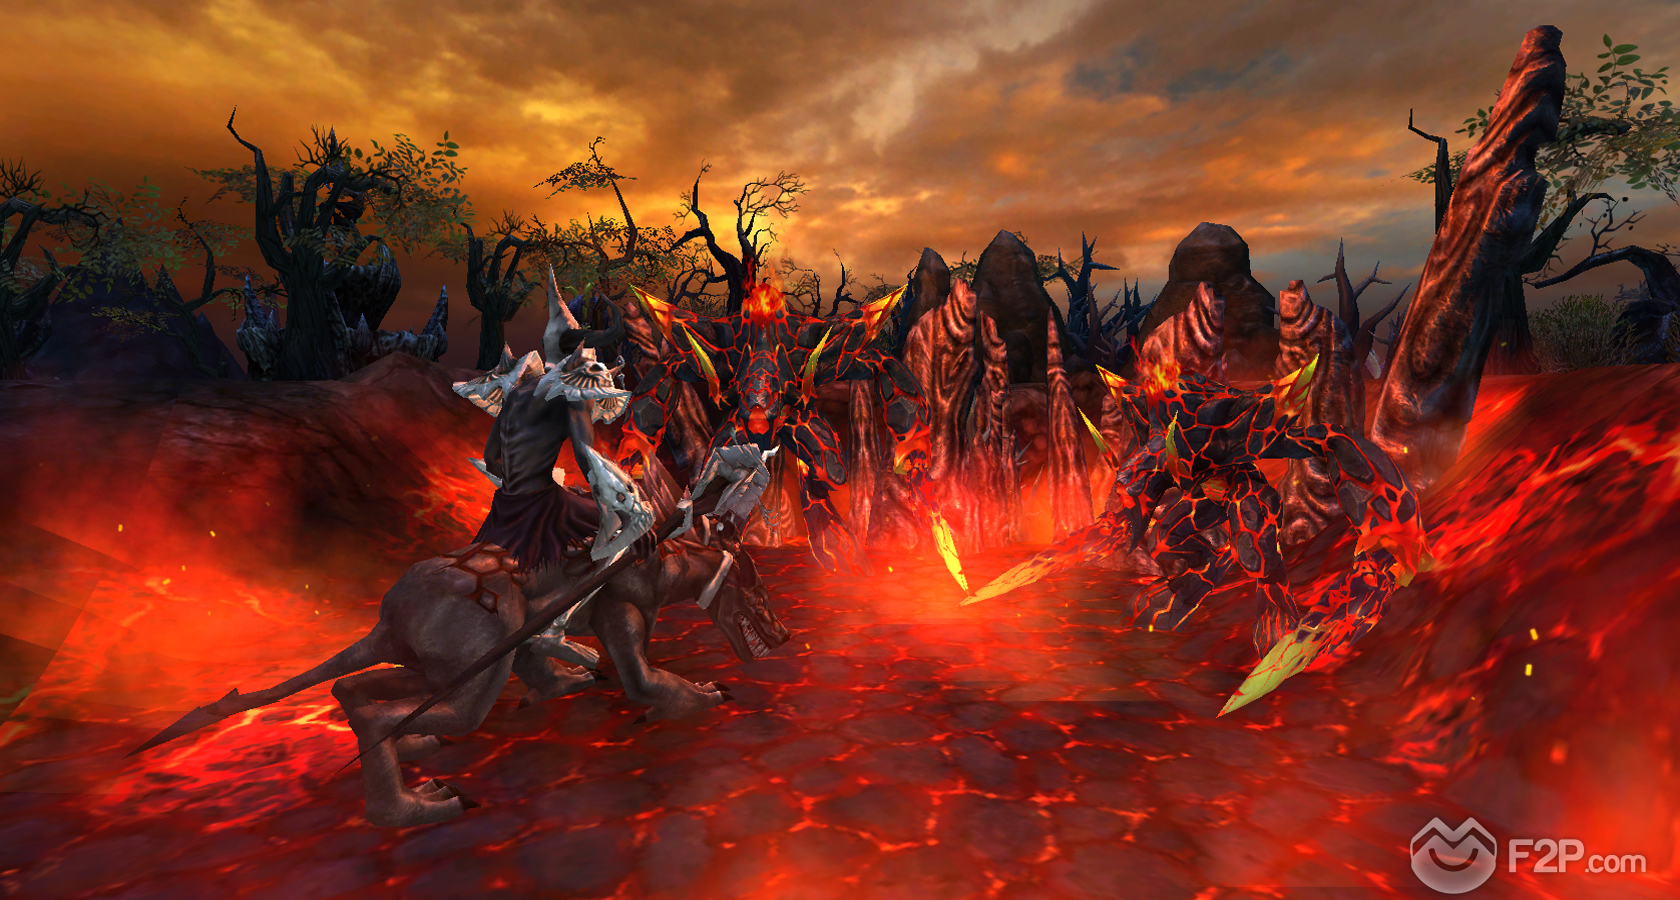 Click image for larger version. Name:	Realm of the Titans 2.jpg Views:	331 Size:	1.23 MB ID:	3354